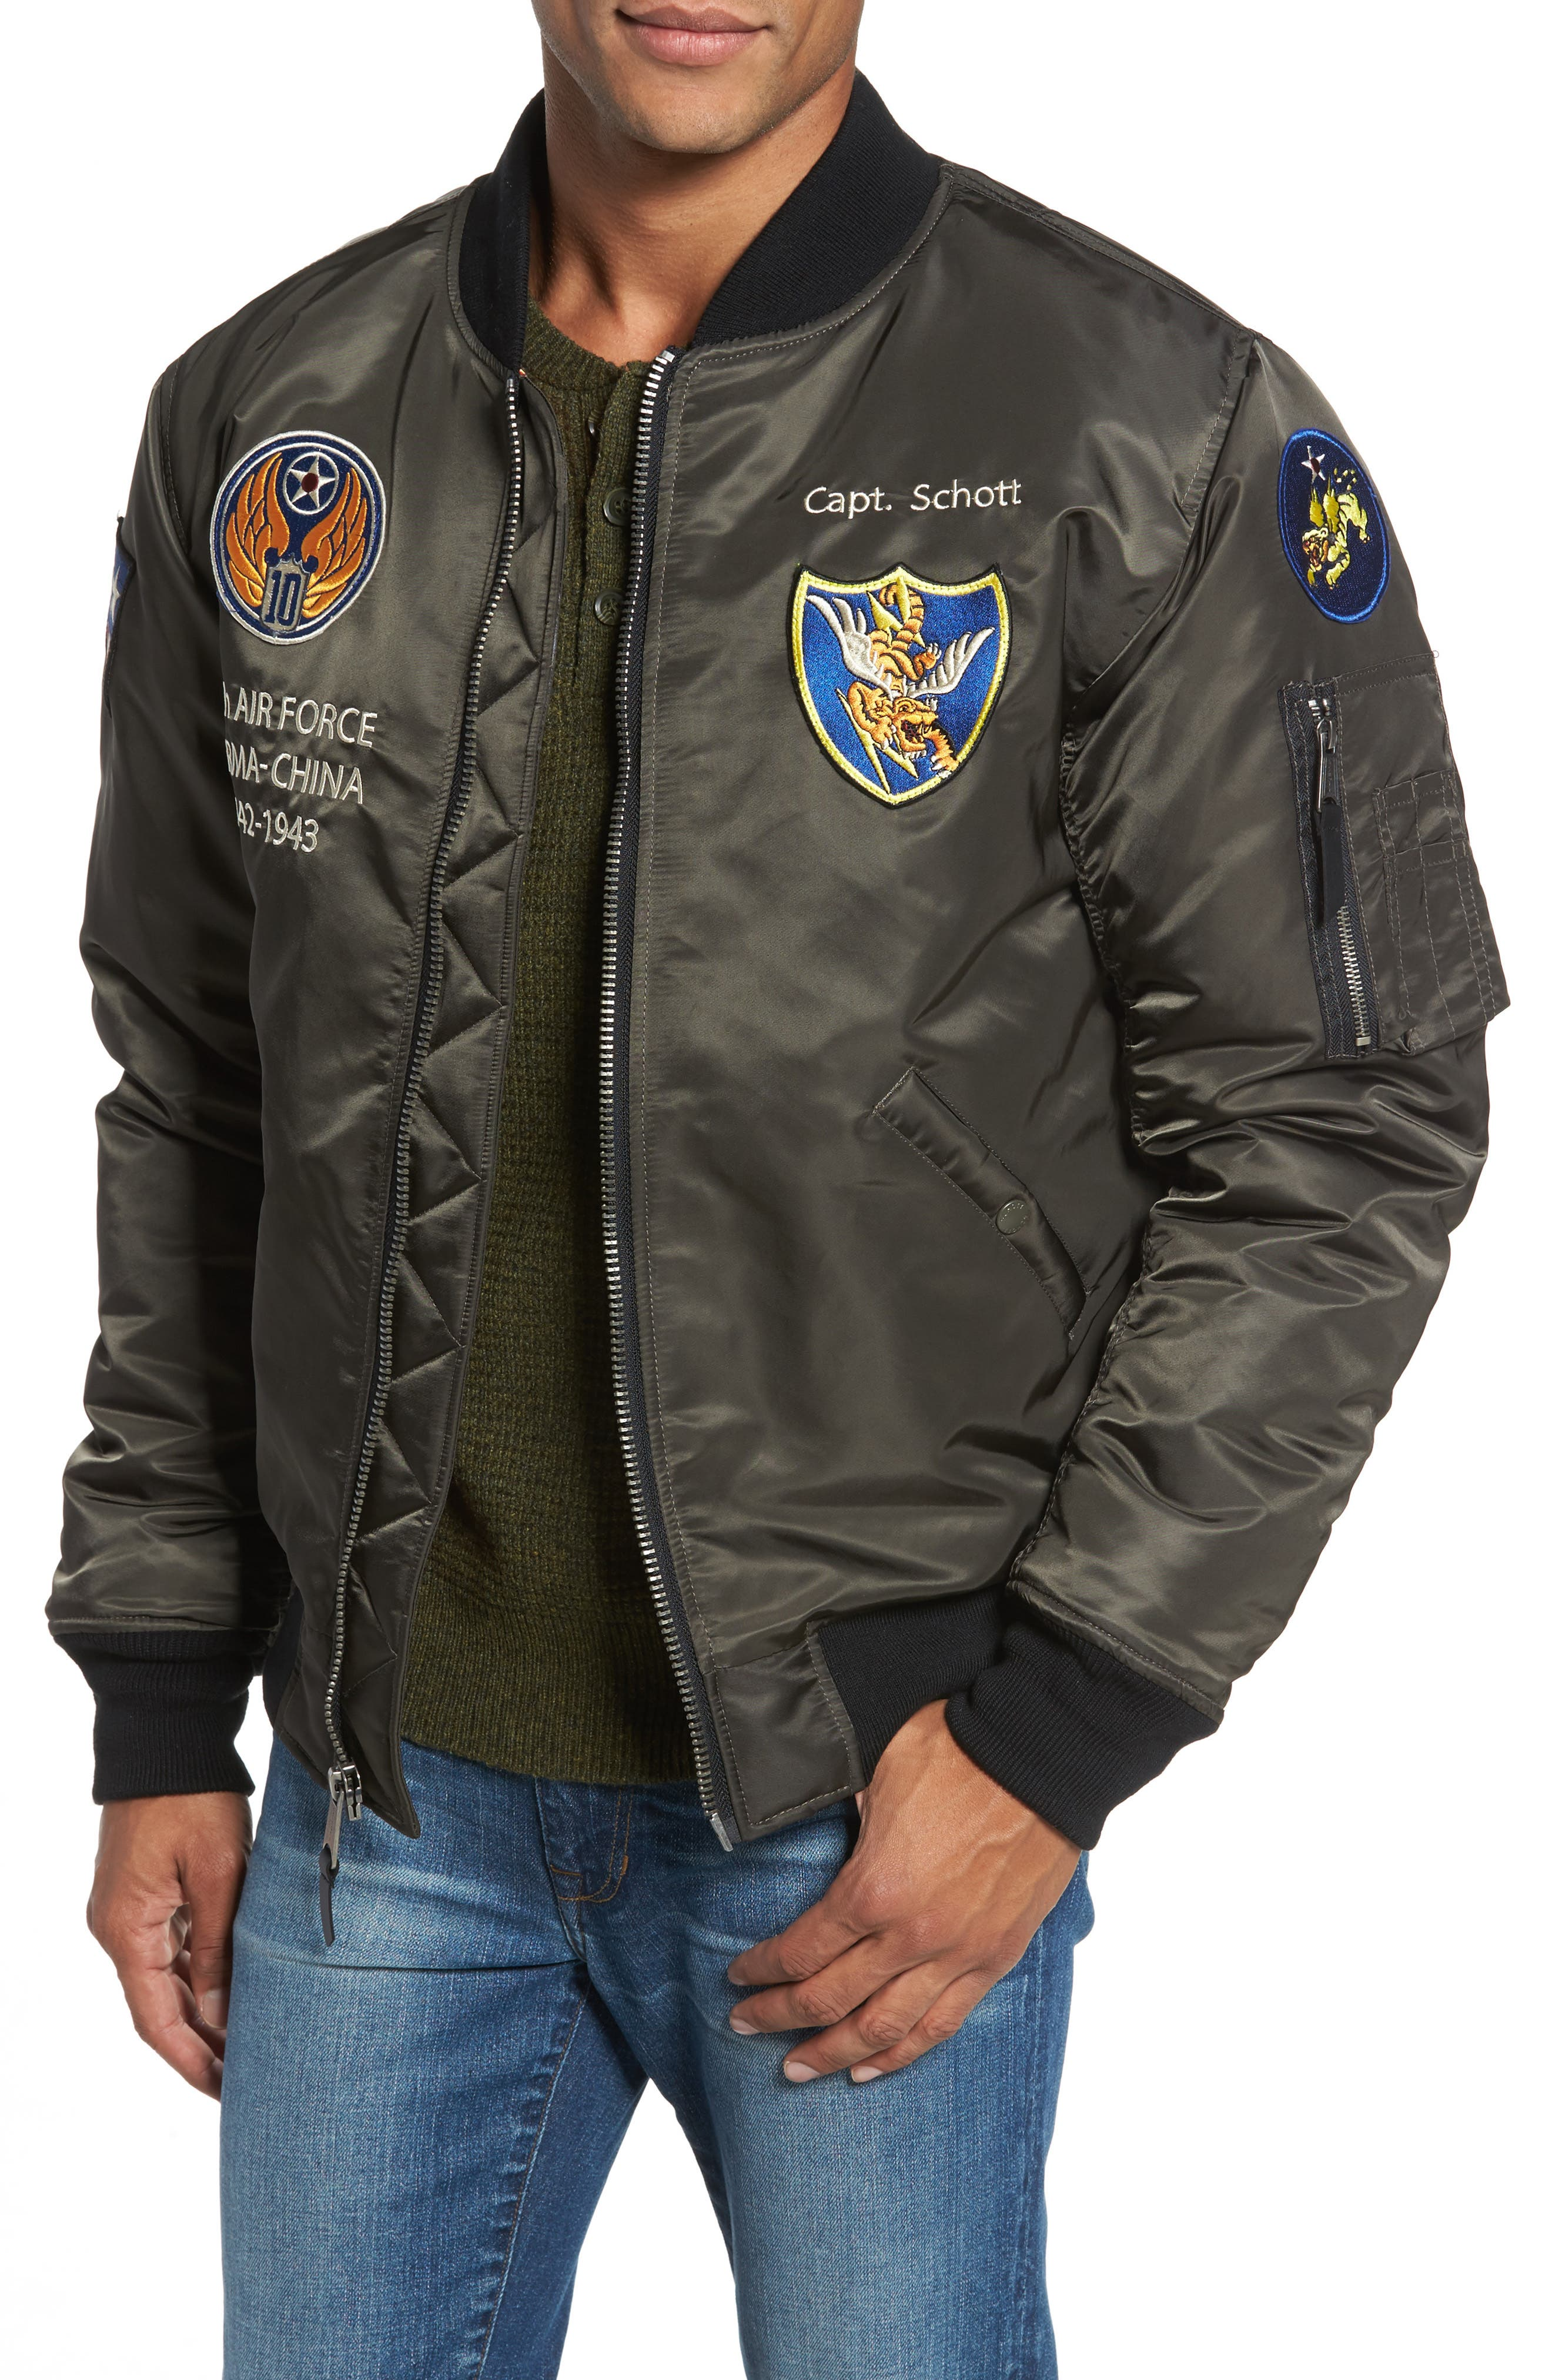 Main Image - Schott NYC Highly Decorated Embroidered Flight Jacket